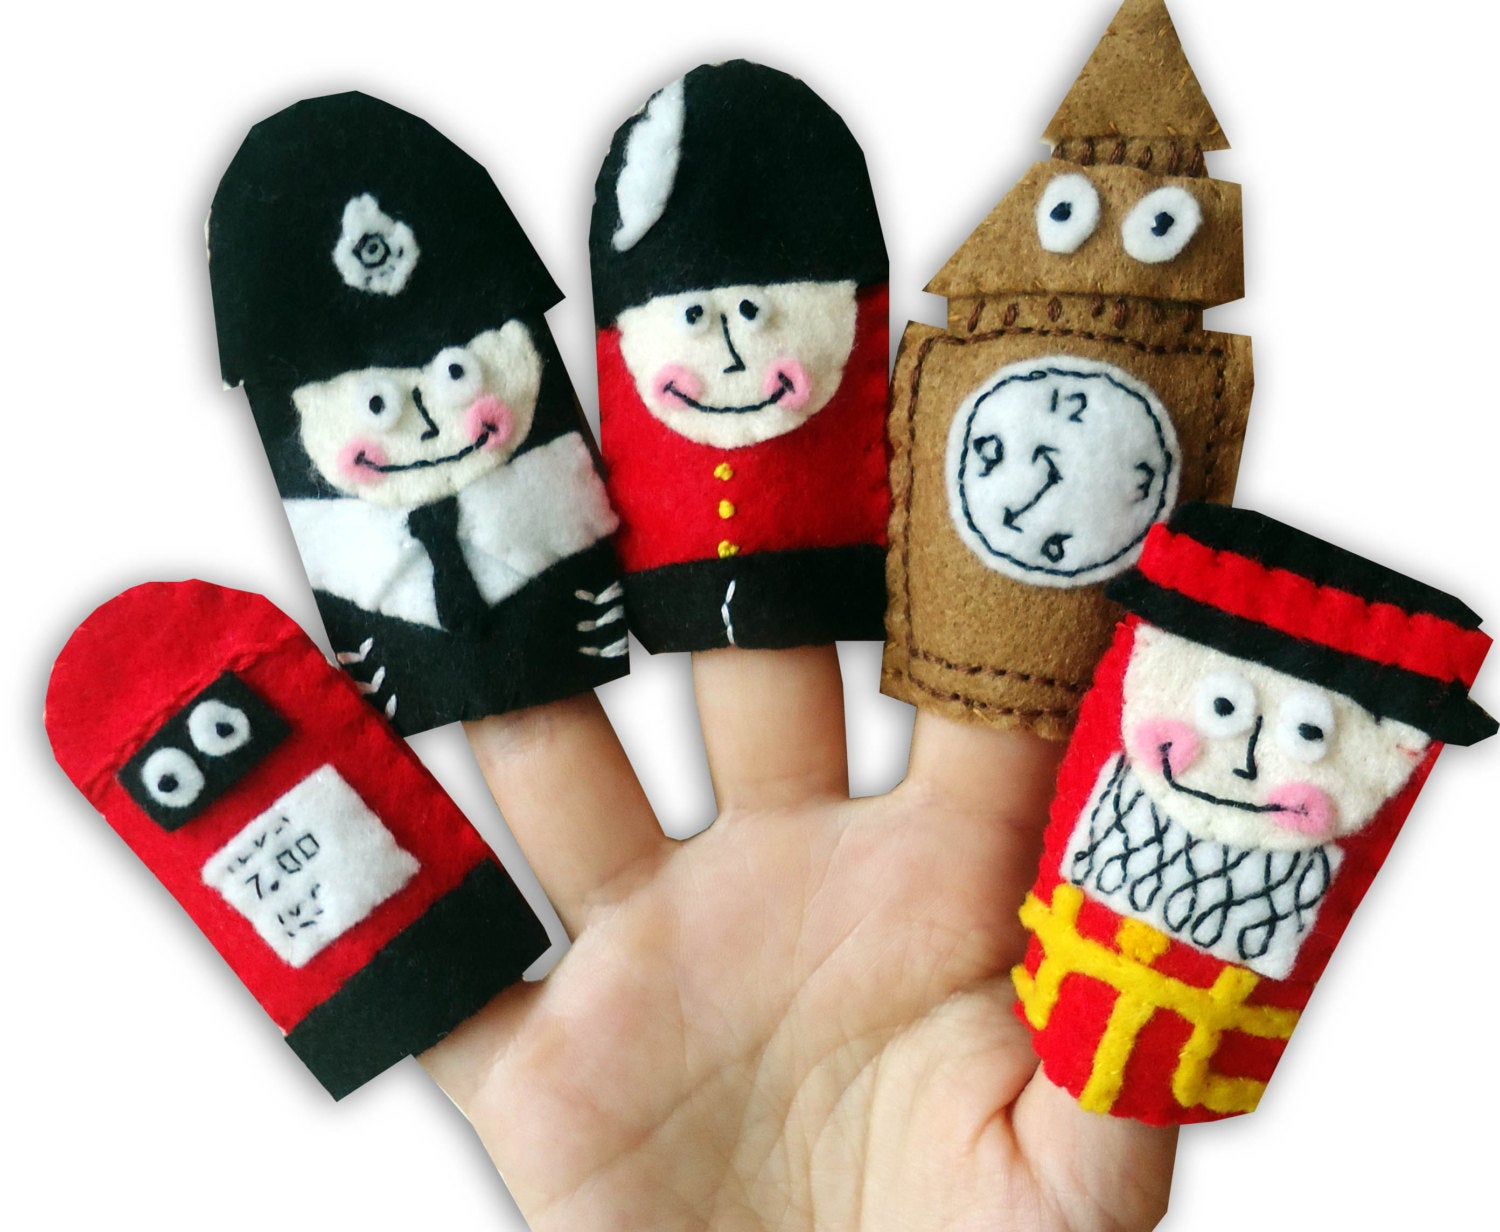 British Finger Puppets, English Gift, Traditional Kids Toys, London, Felt Finger Puppets, Stocking Filler